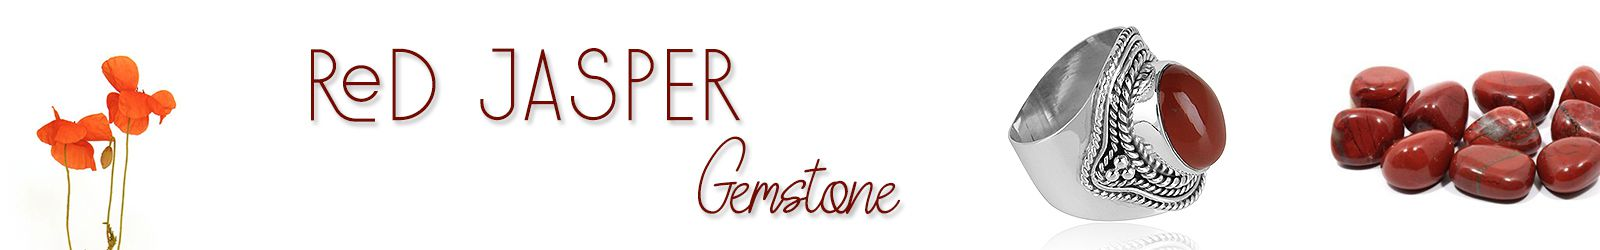 Online Red Jasper Gemstone Silver Jewelry Supplier in Jaipur